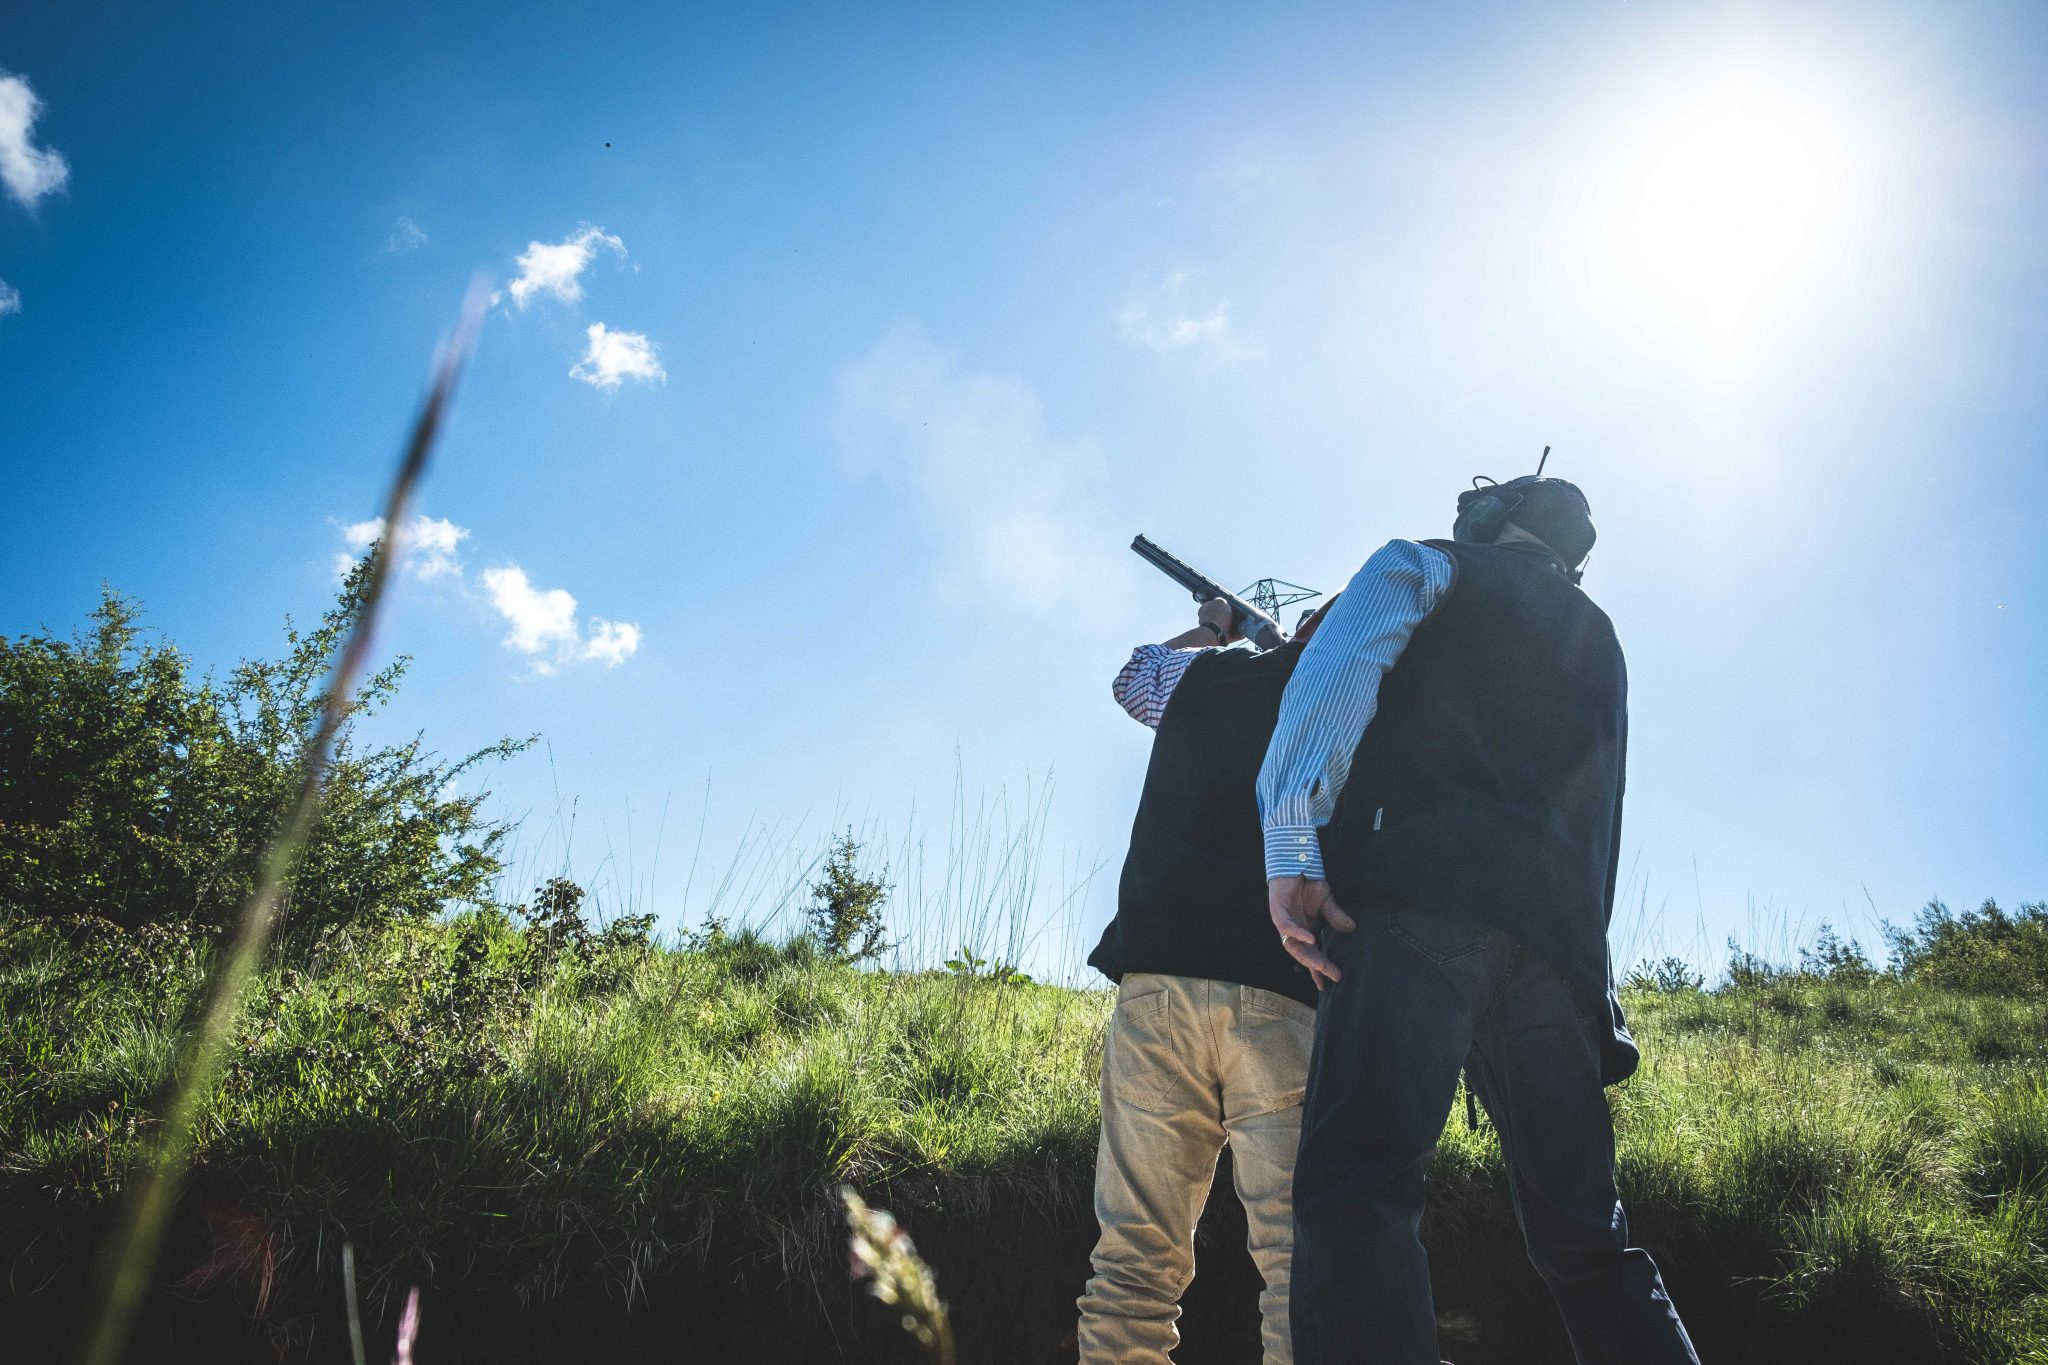 Game shooting lesson at the Lady's Wood Extreme Tower